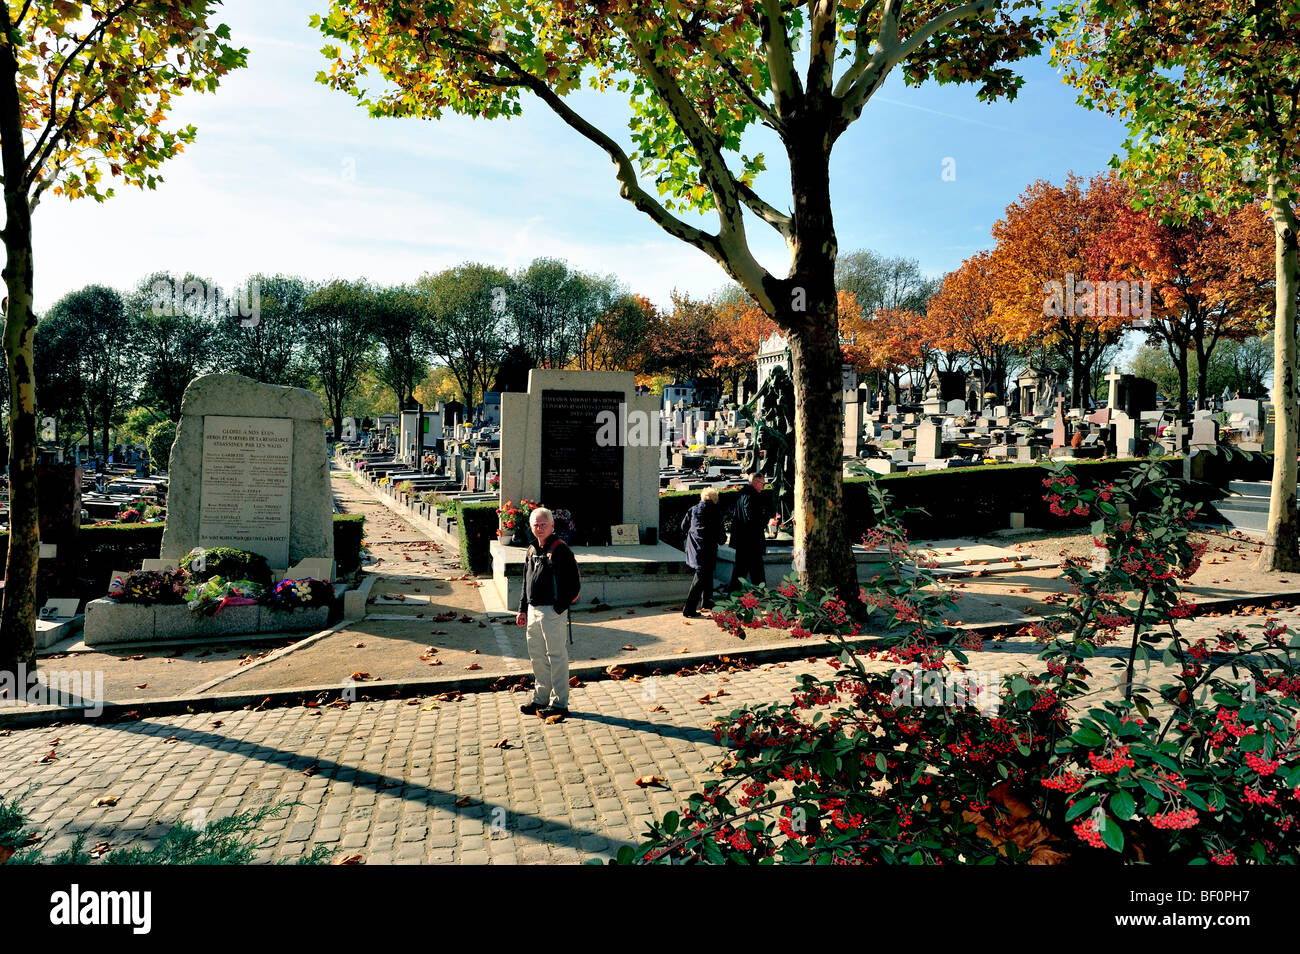 Paris, France - 'Pere Lachaise' Cemetery, Monuments, People Visiting, 'Street Scene' 'Urban - Stock Image